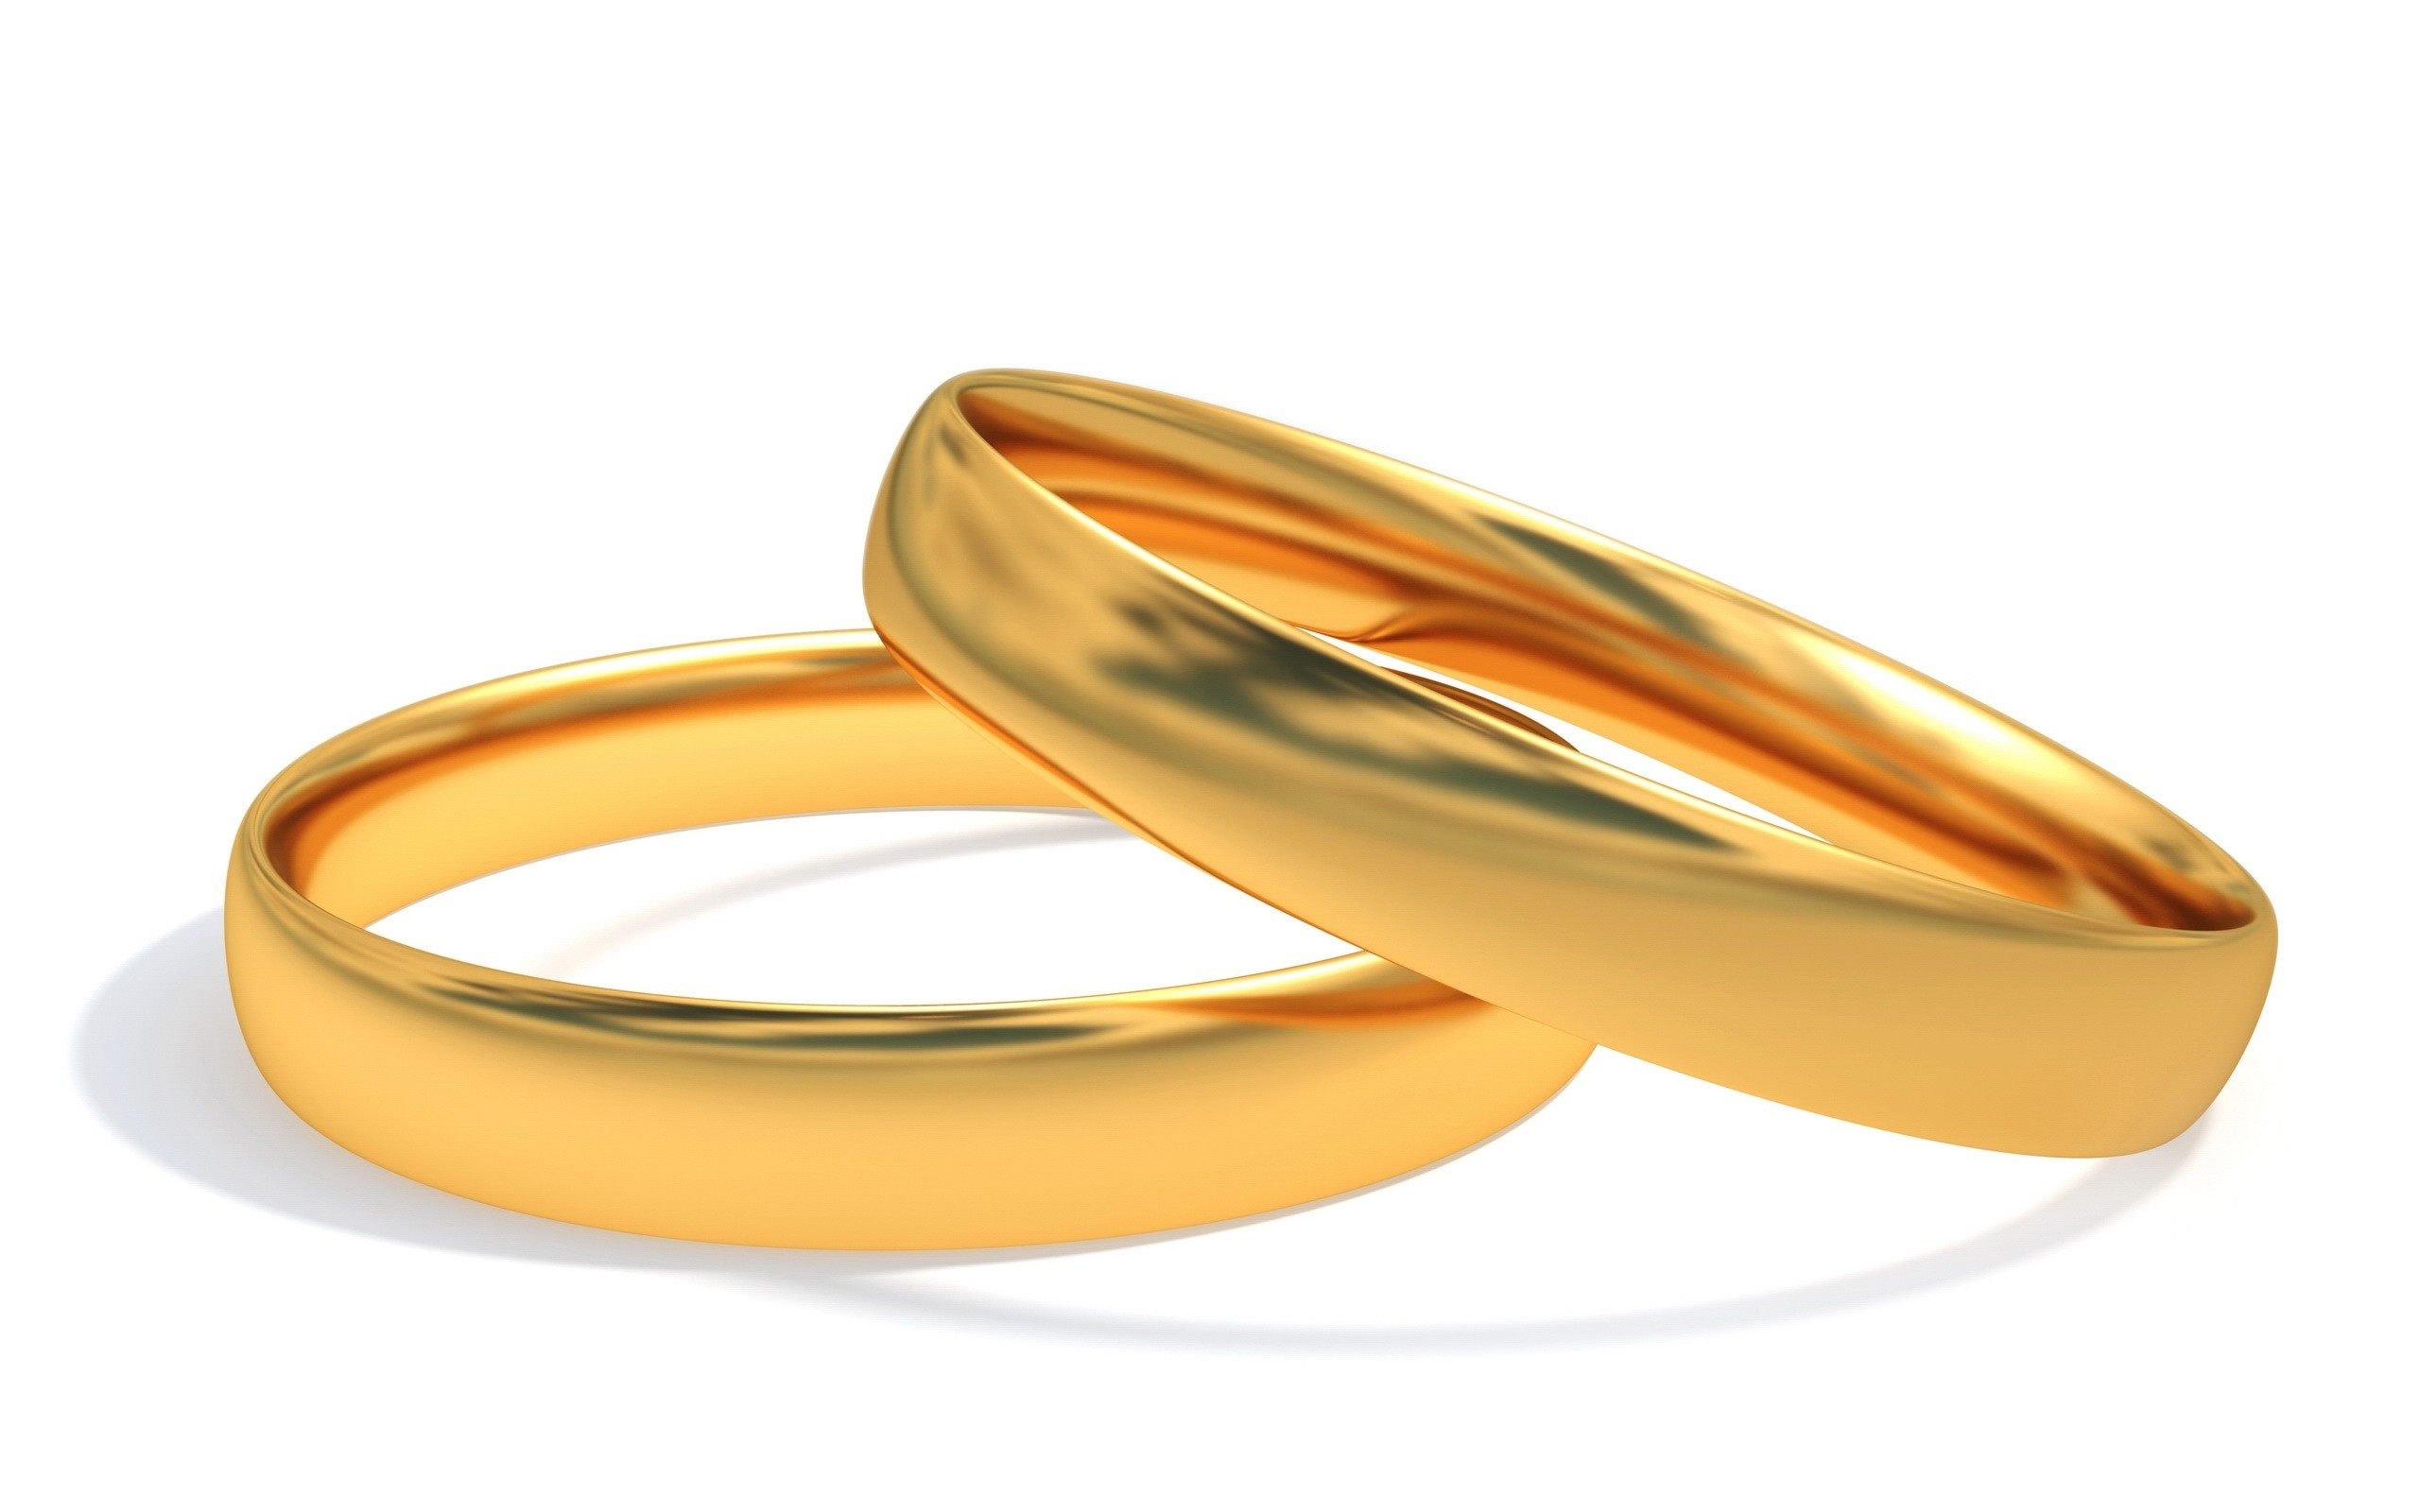 golden rings best clipart clip art web gold png wedding